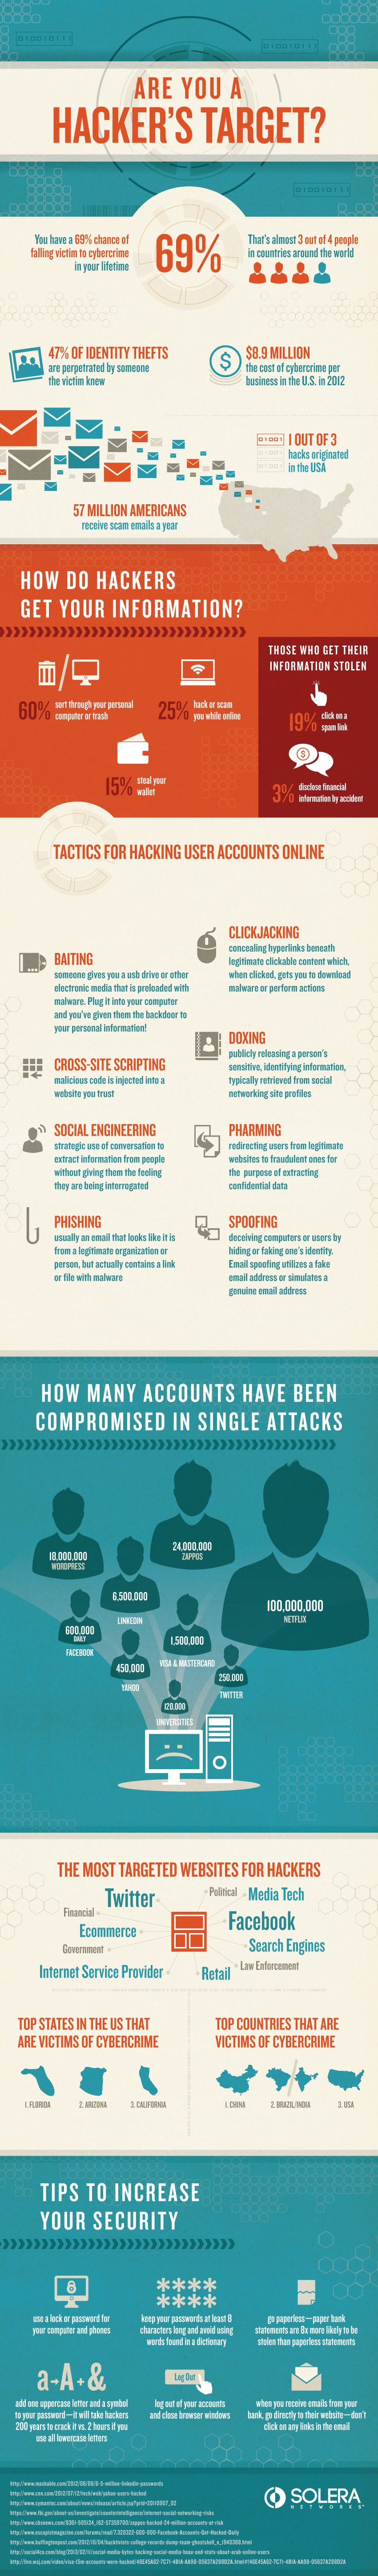 Are You An Easy Hacker Target? [Infographic]